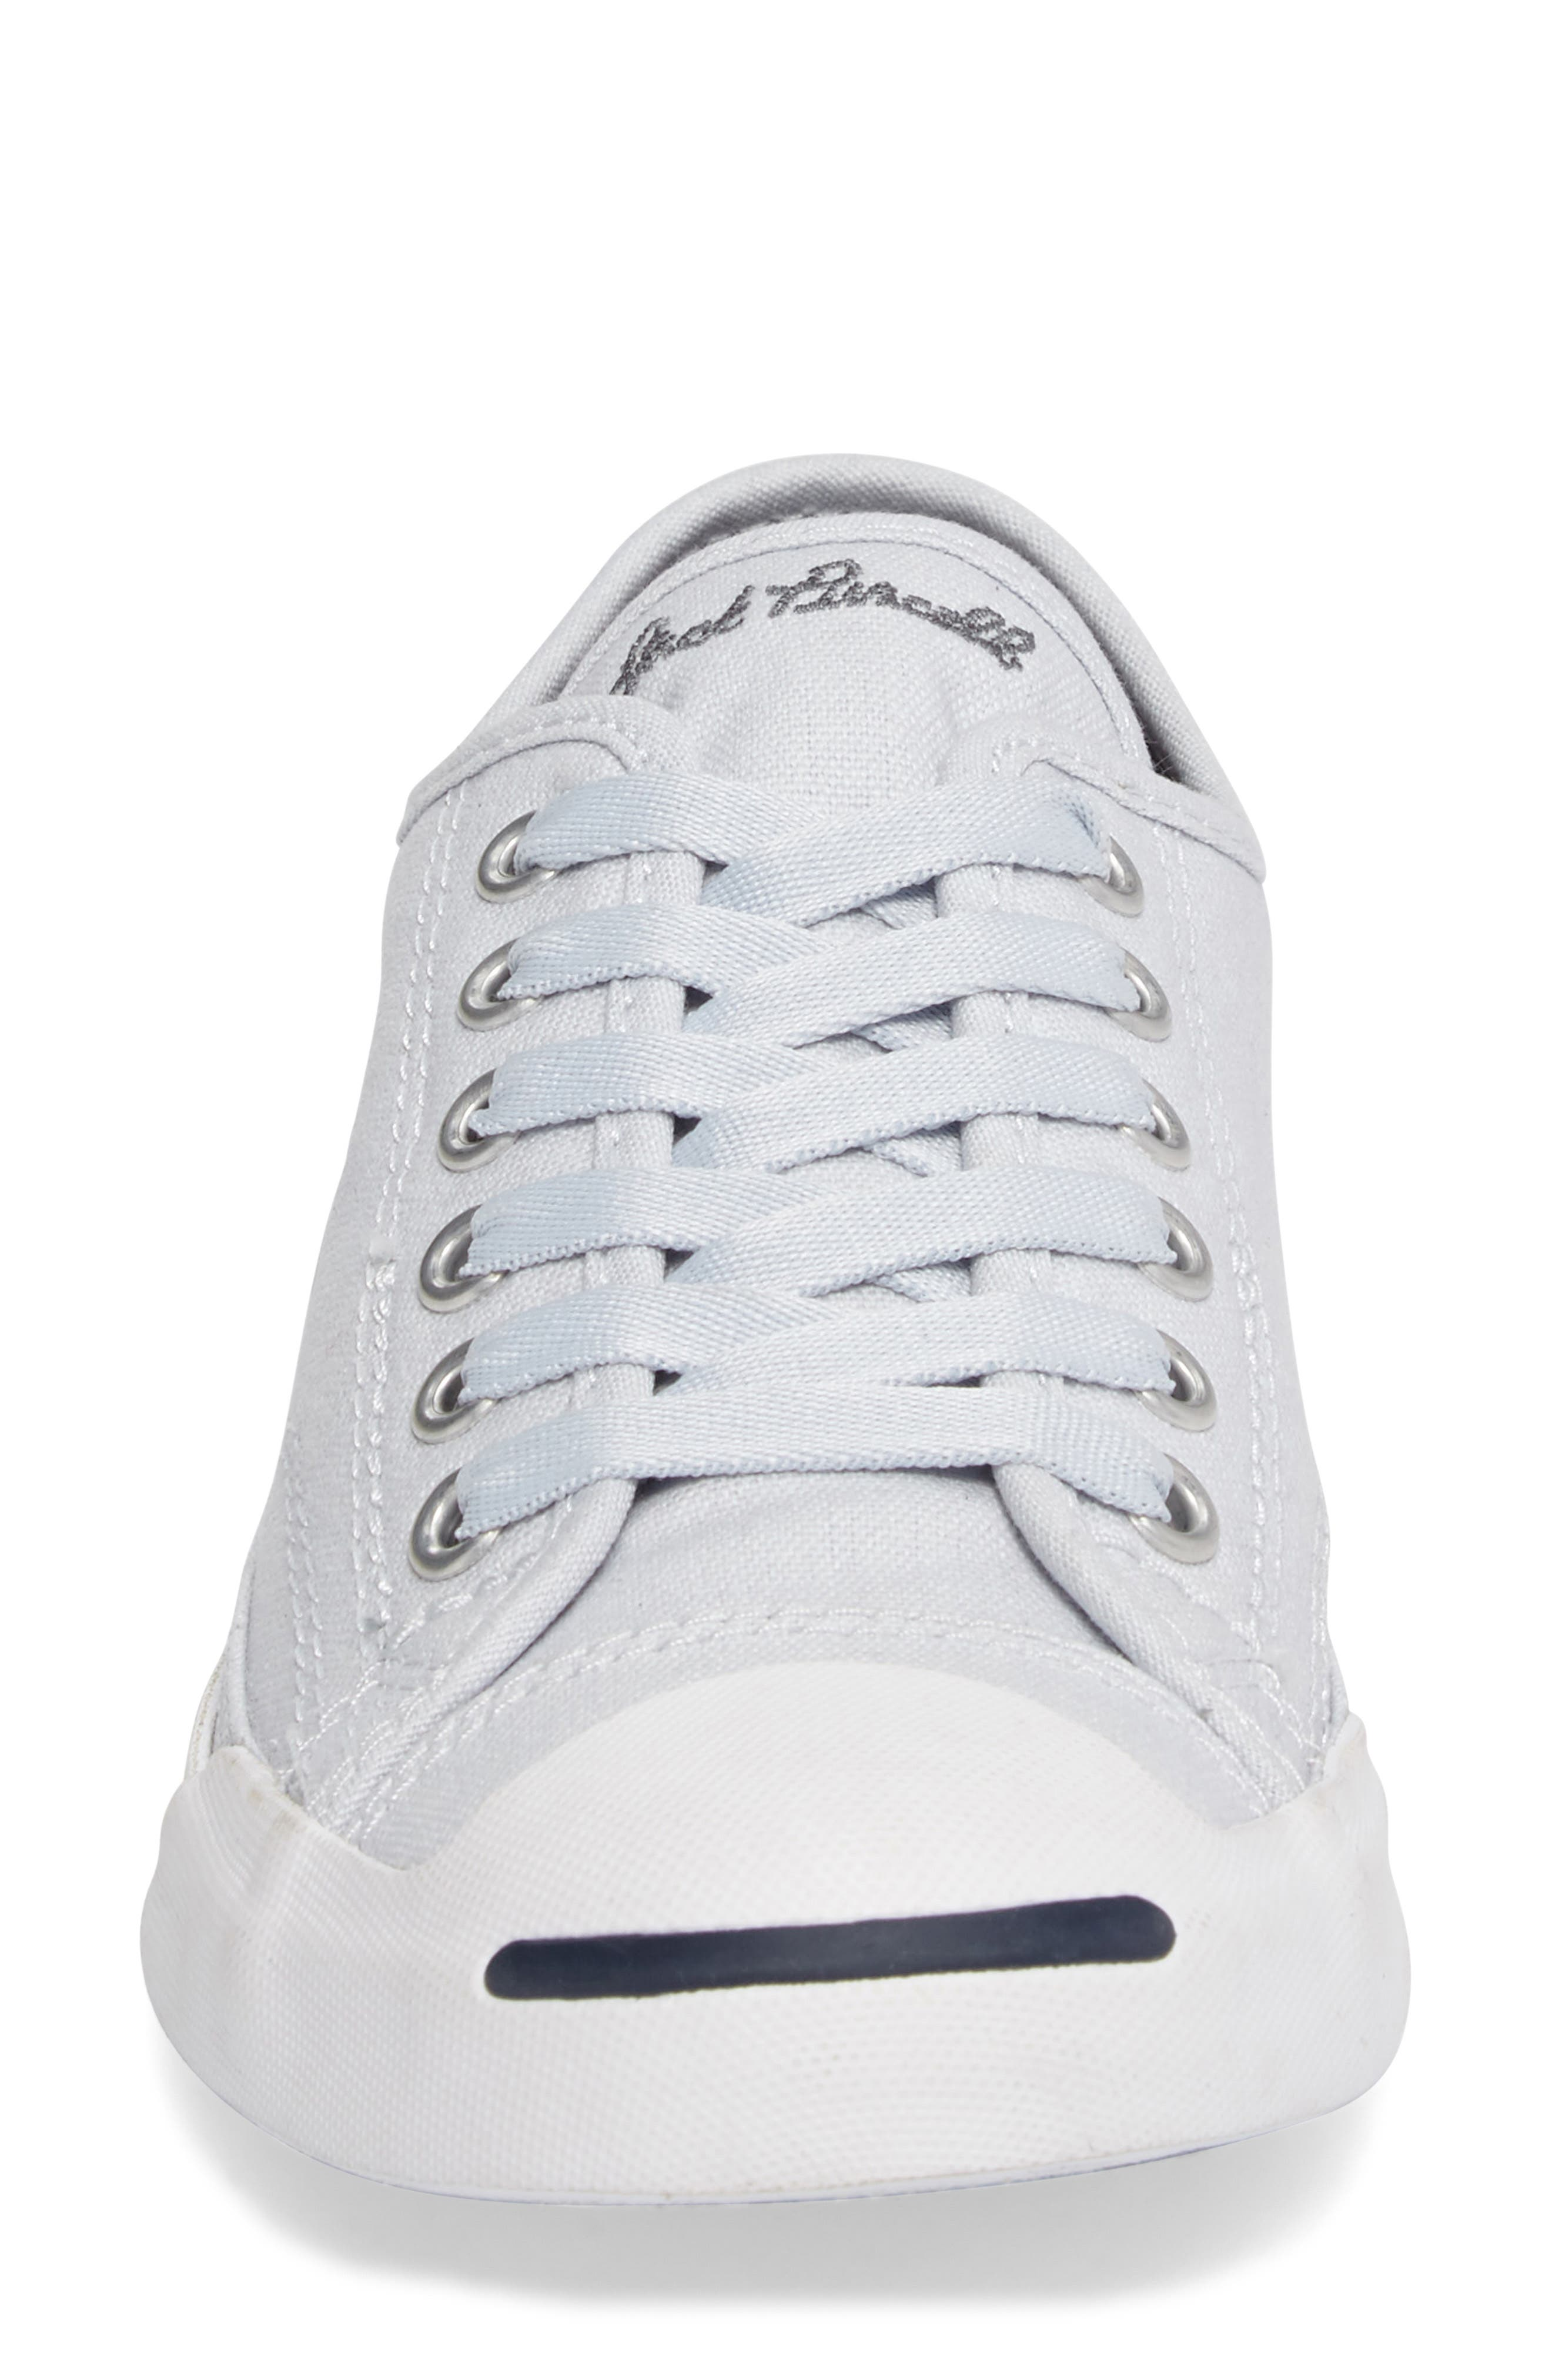 Jack Purcell Signature Ox Low Top Sneaker,                             Alternate thumbnail 4, color,